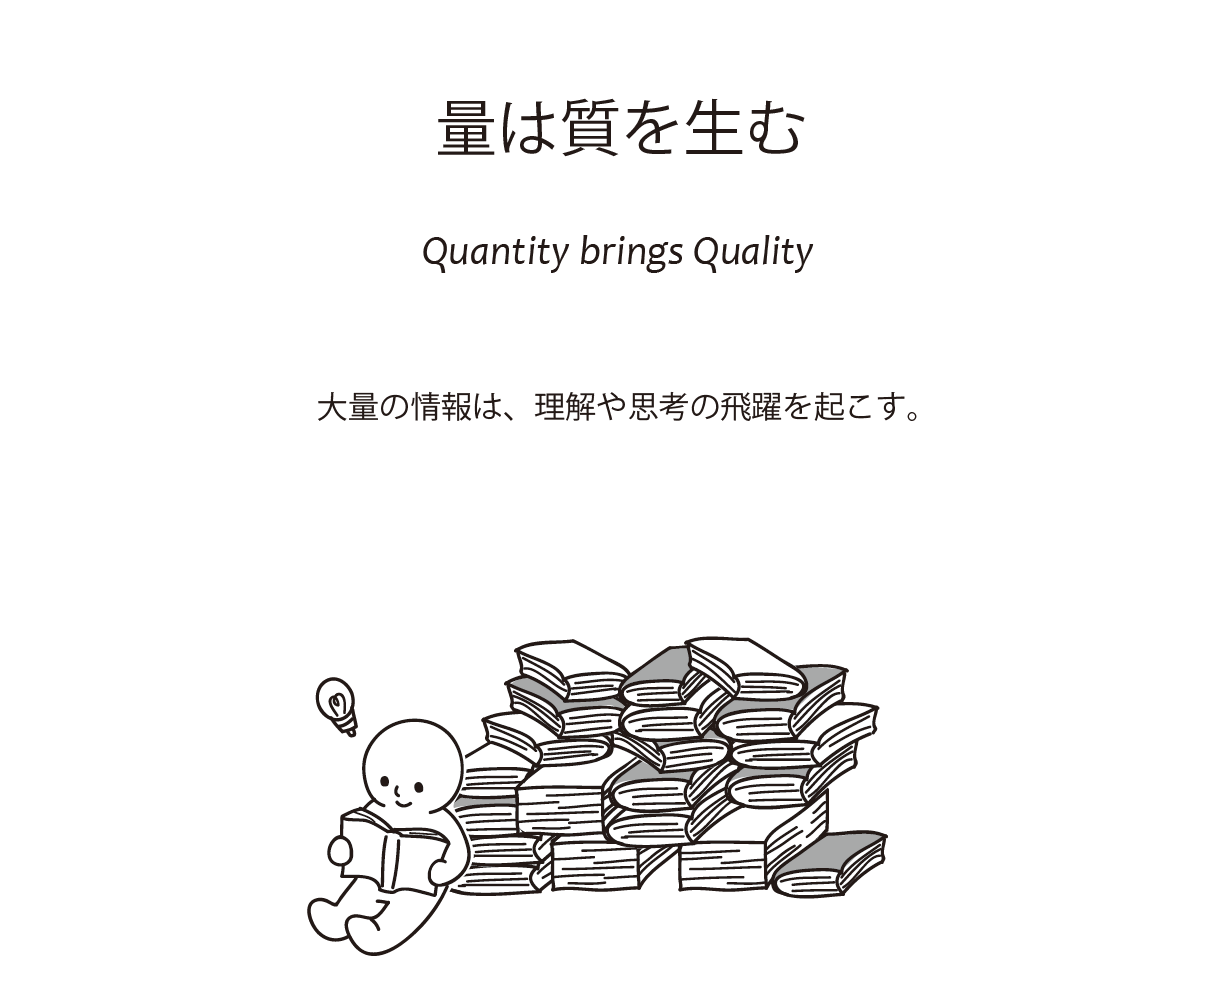 QuantityBringsQuality.png